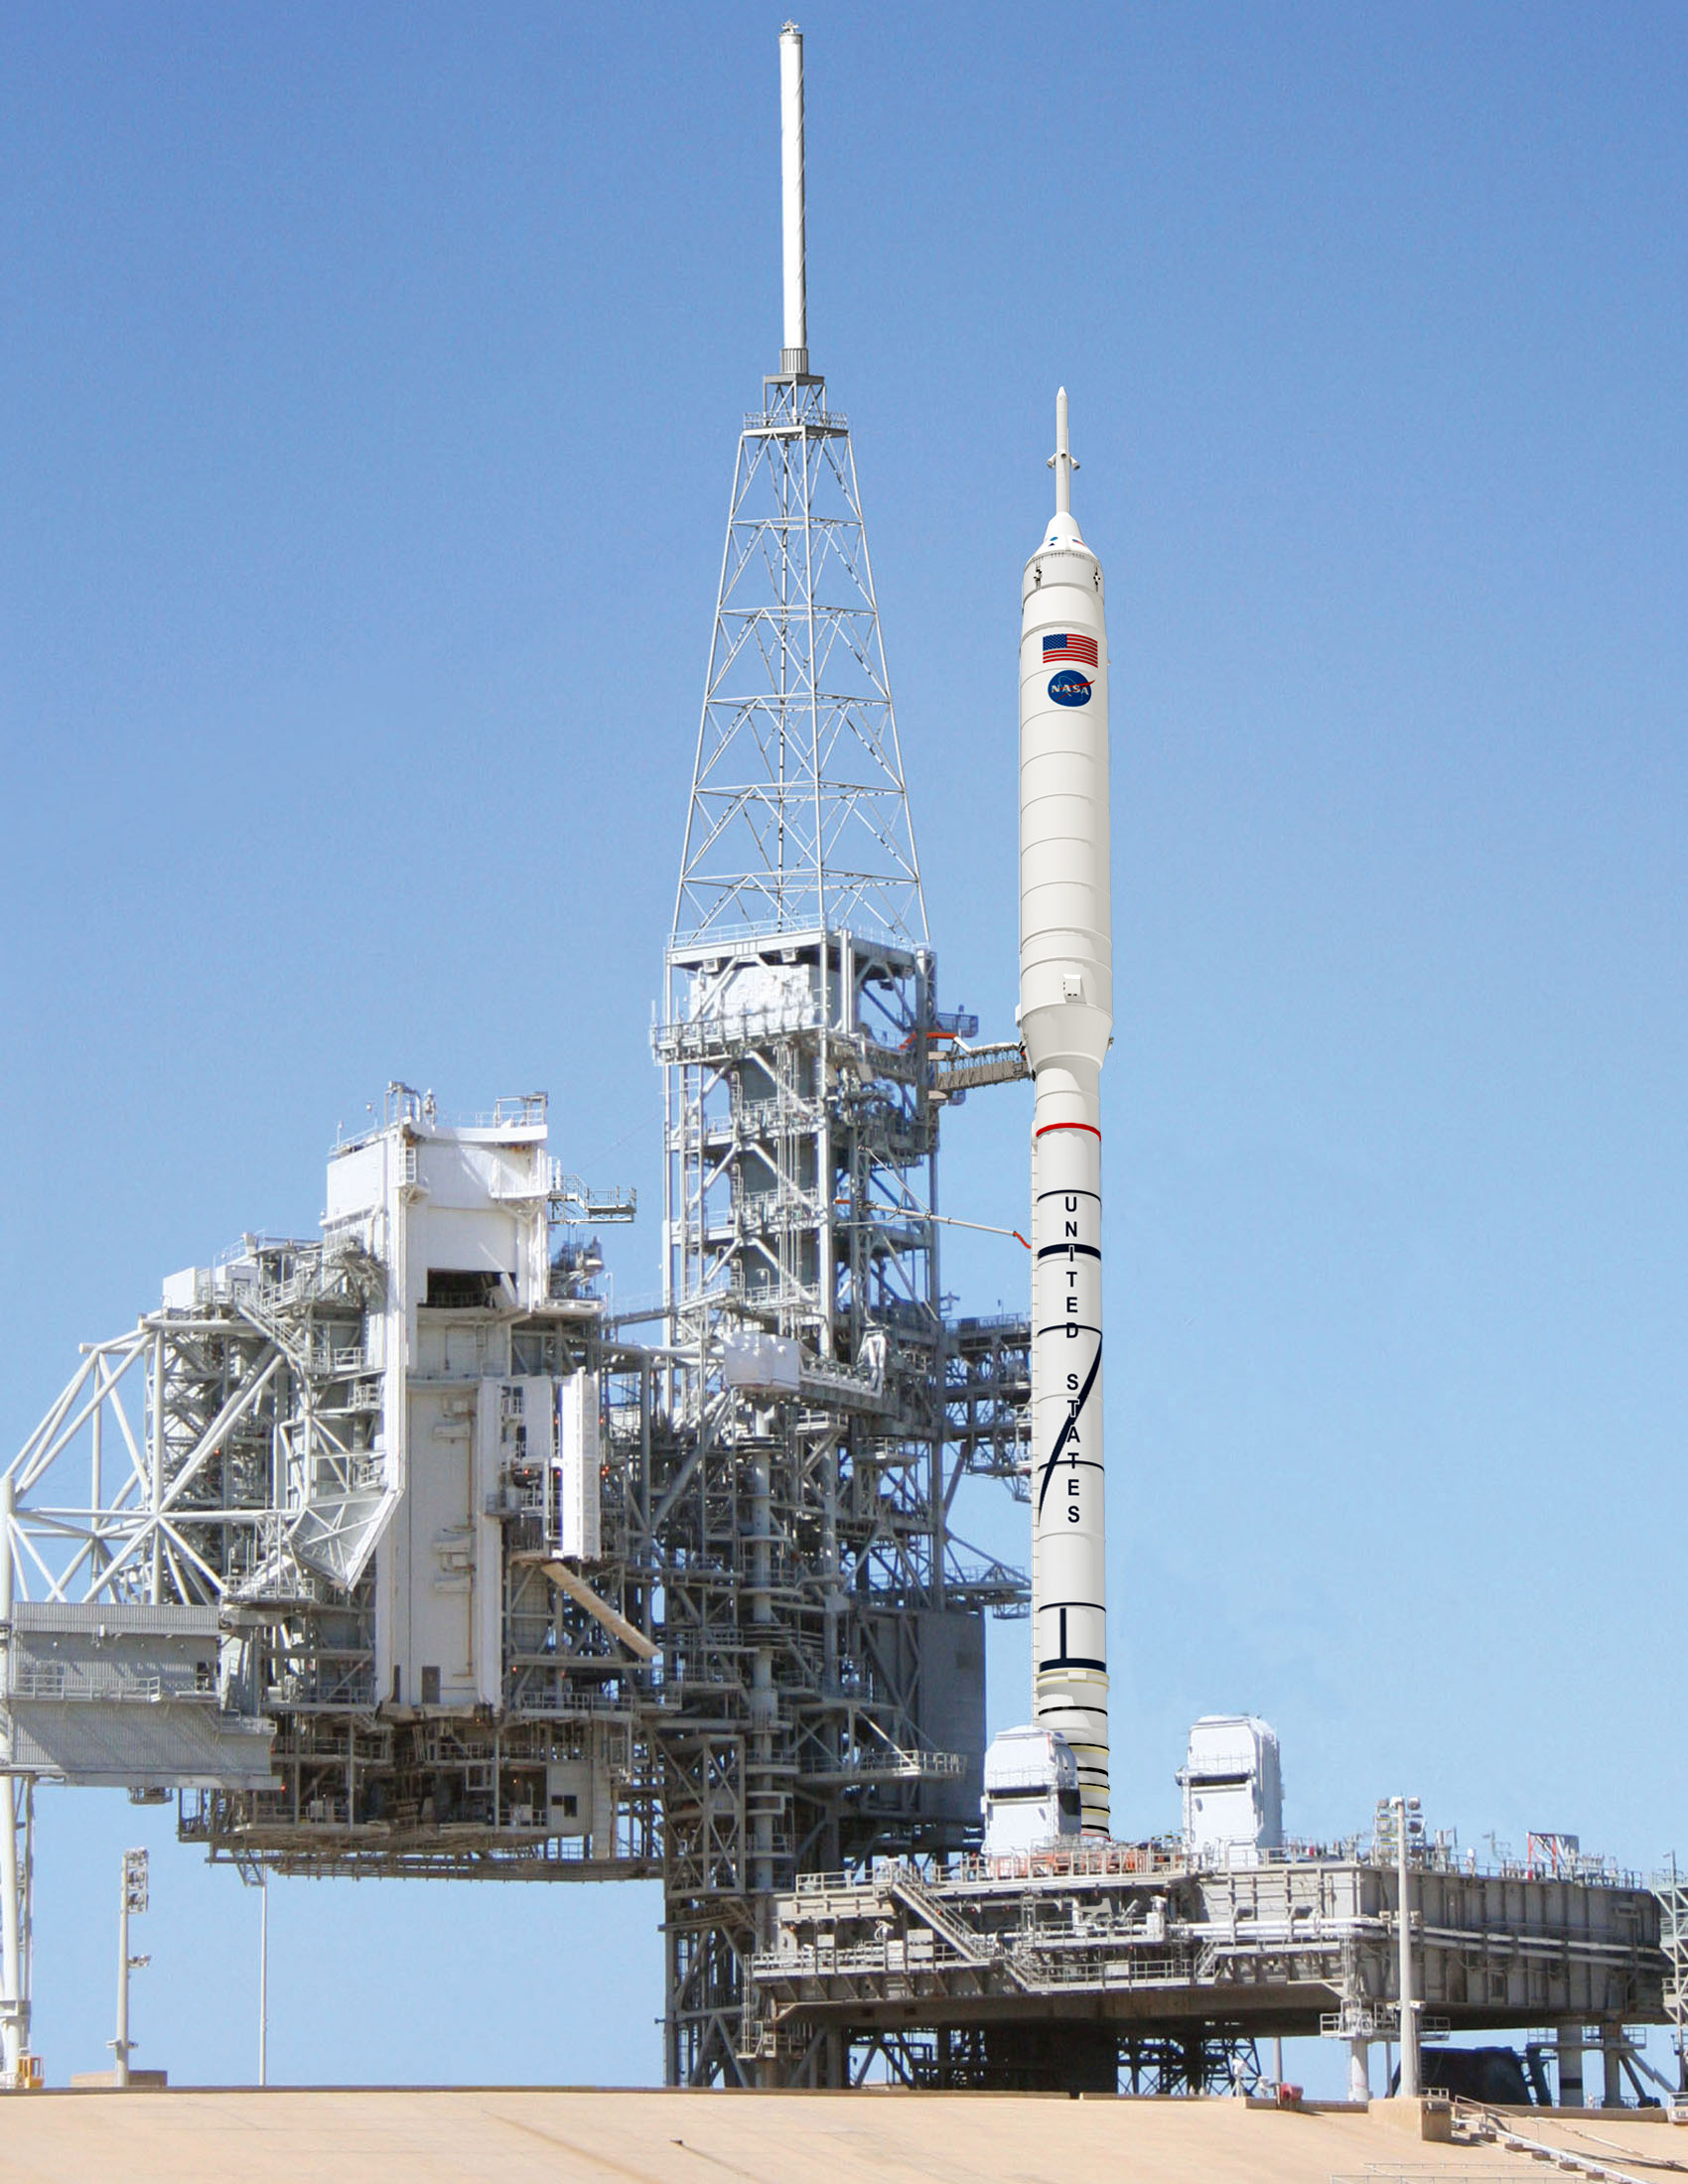 NASA - Ares I-X on Launch Pad